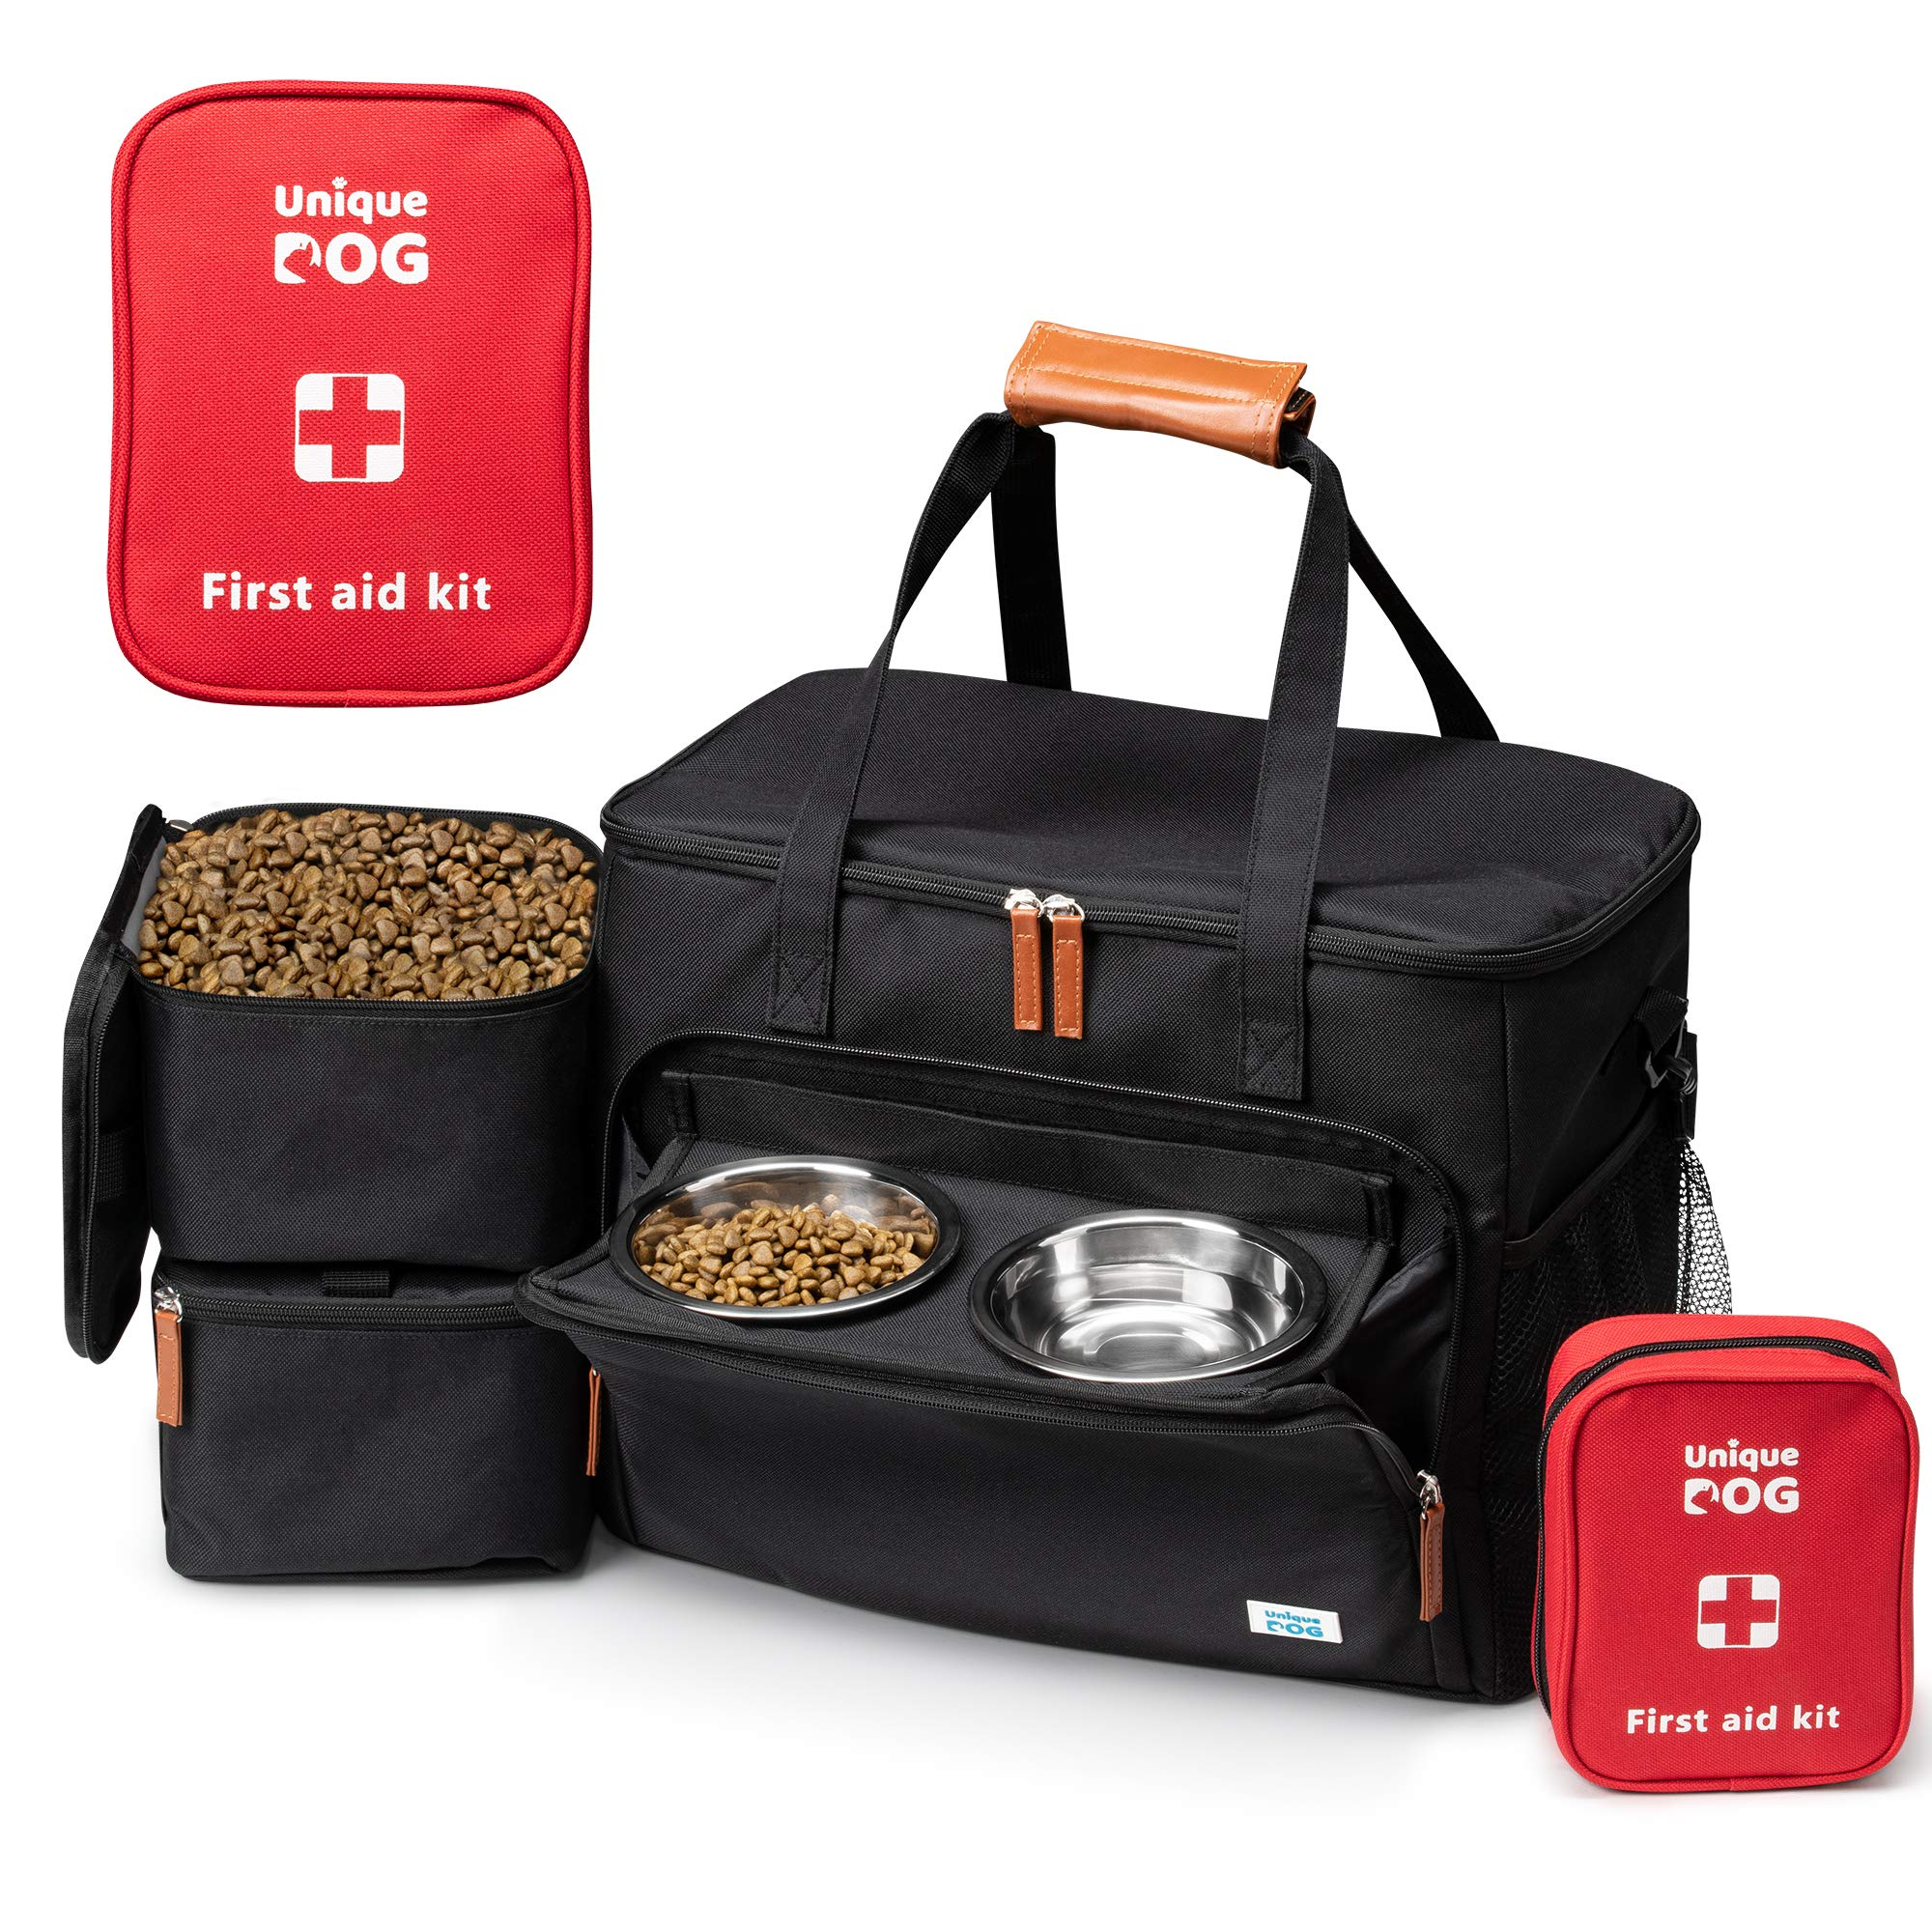 Unique Dog Travel Bag - Dog Traveling Luggage Set for Dogs Accessories - Include Pet First Aid Kit with Case Tags, Elevated Bowl Stand, 2X Food Storage Containers, 2X Dog Stainless Steel Bowls. by Unique Dog